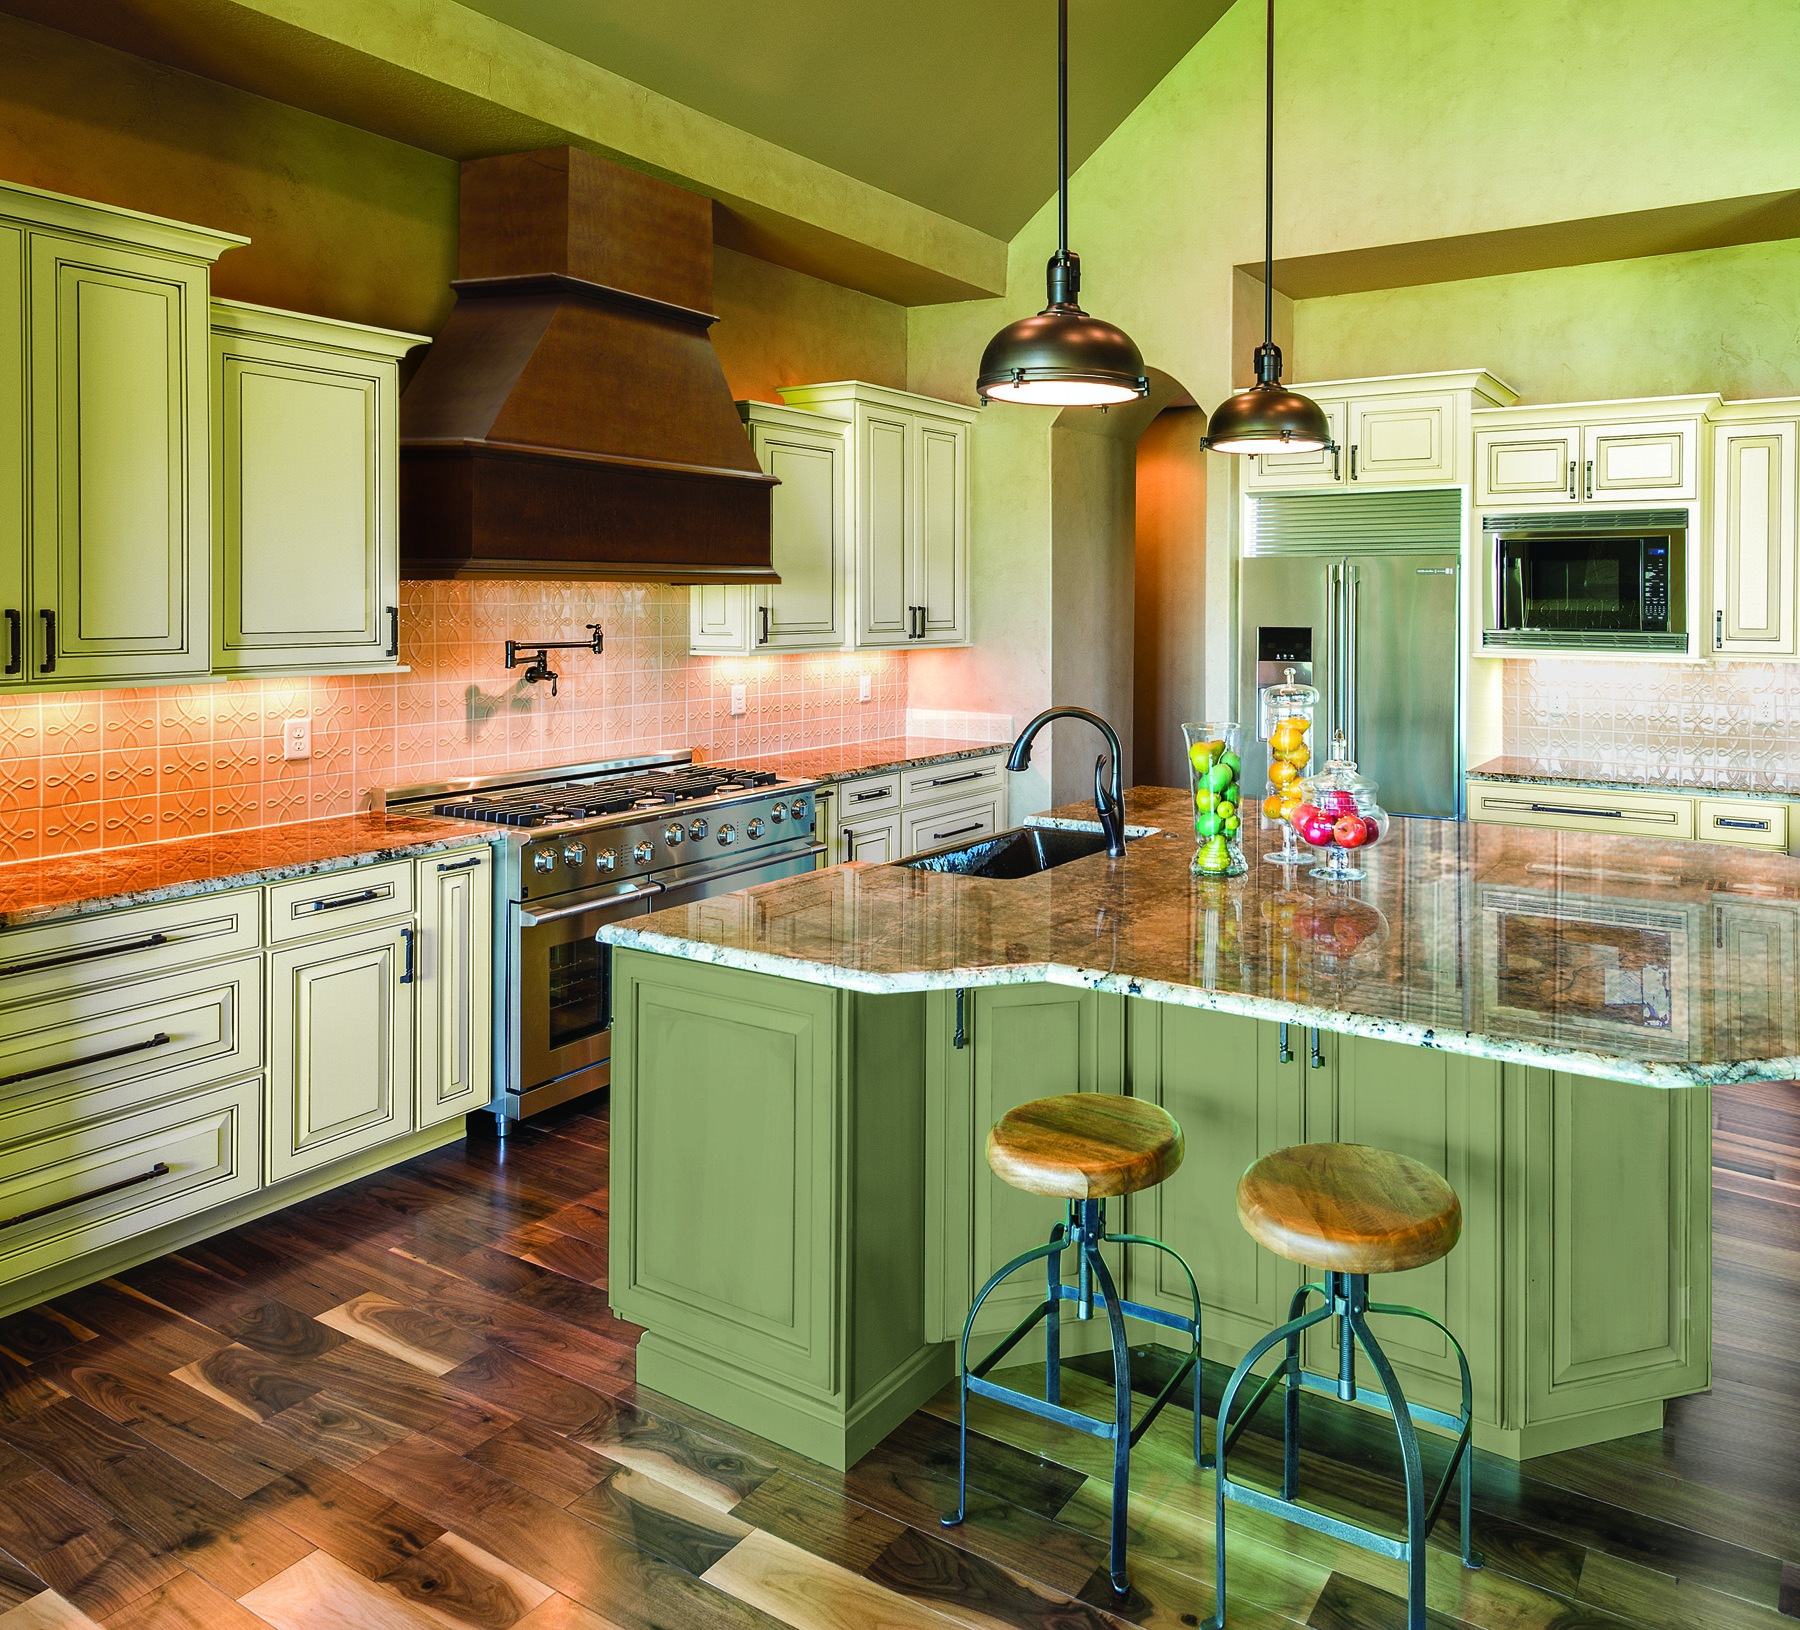 Green Kitchen Colour Ideas Home Trends: New Paint Colors Bring High-Fashion Home To Kitchen